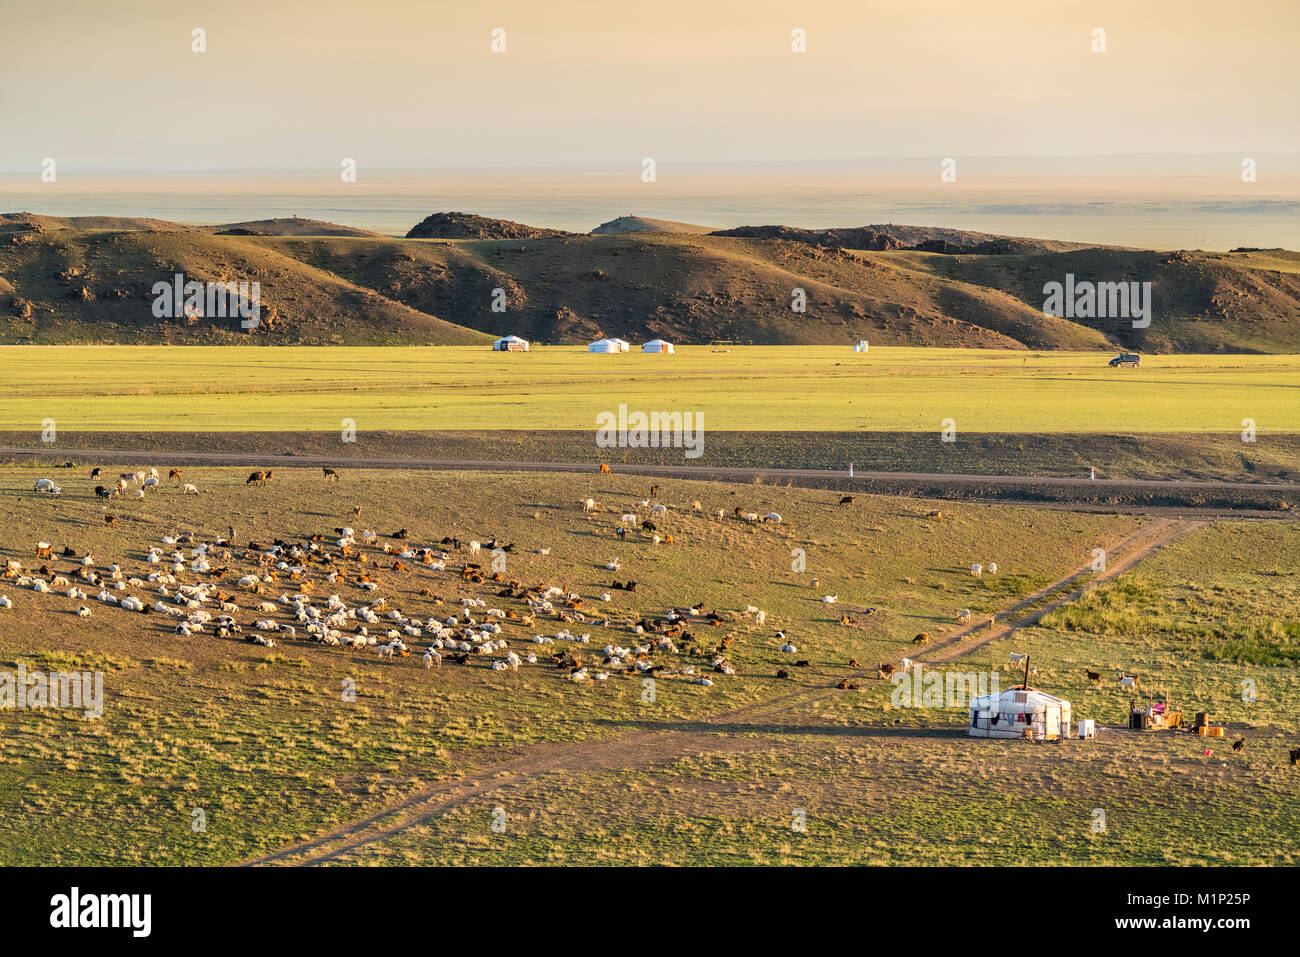 Nomadic camp and livestock, Bayandalai district, South Gobi province, Mongolia, Central Asia, Asia - Stock Image